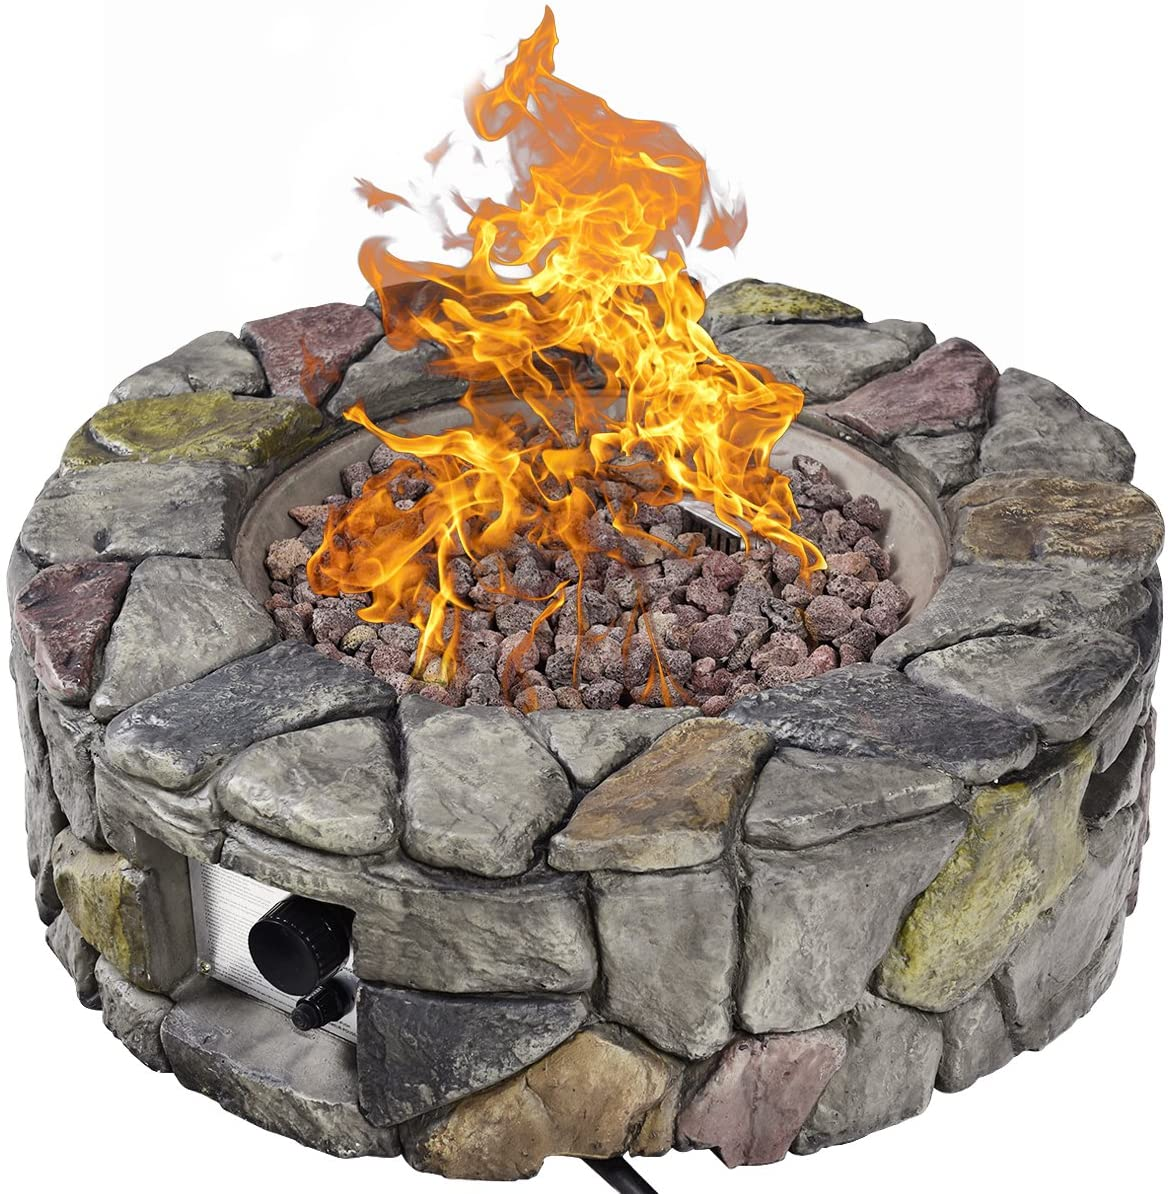 Amazon Com Giantex Gas Fire Pit 28 Inch 40 000 Btu Propane Fire Pit Outdoor W Natural Stone Cover Etl Certification Stainless Steel Gas Burner W Electronic Ignition Lava Rock Gray Garden Outdoor